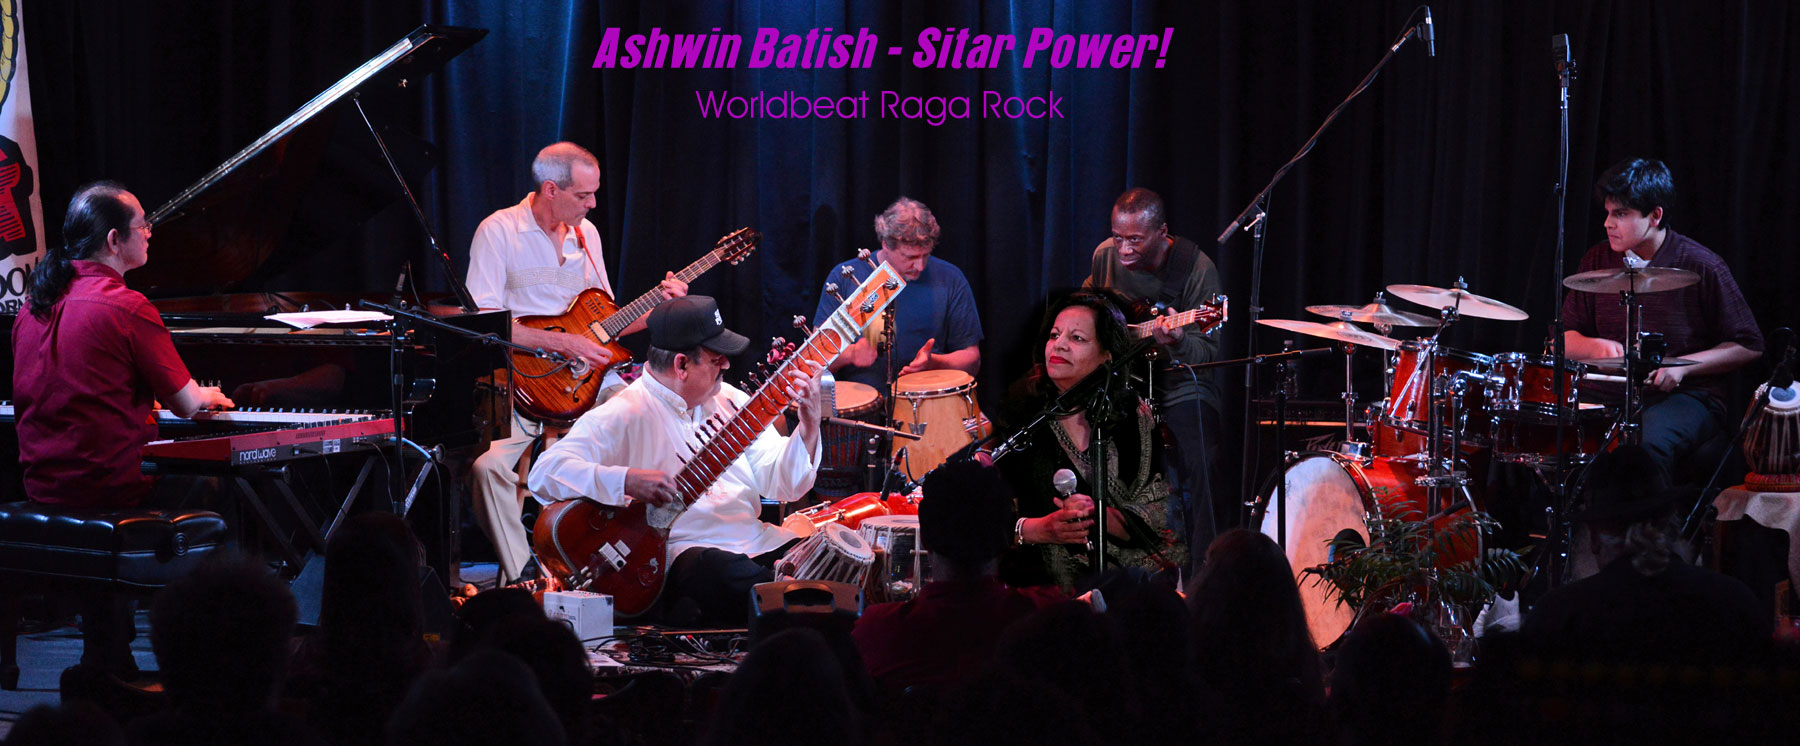 Ashwin Batish with his Sitar Power group - live at the Kuumbwa Jazz Center, Santa Cruz. All rights reserved. �2012 Ashwin Batish. Copyrighted image